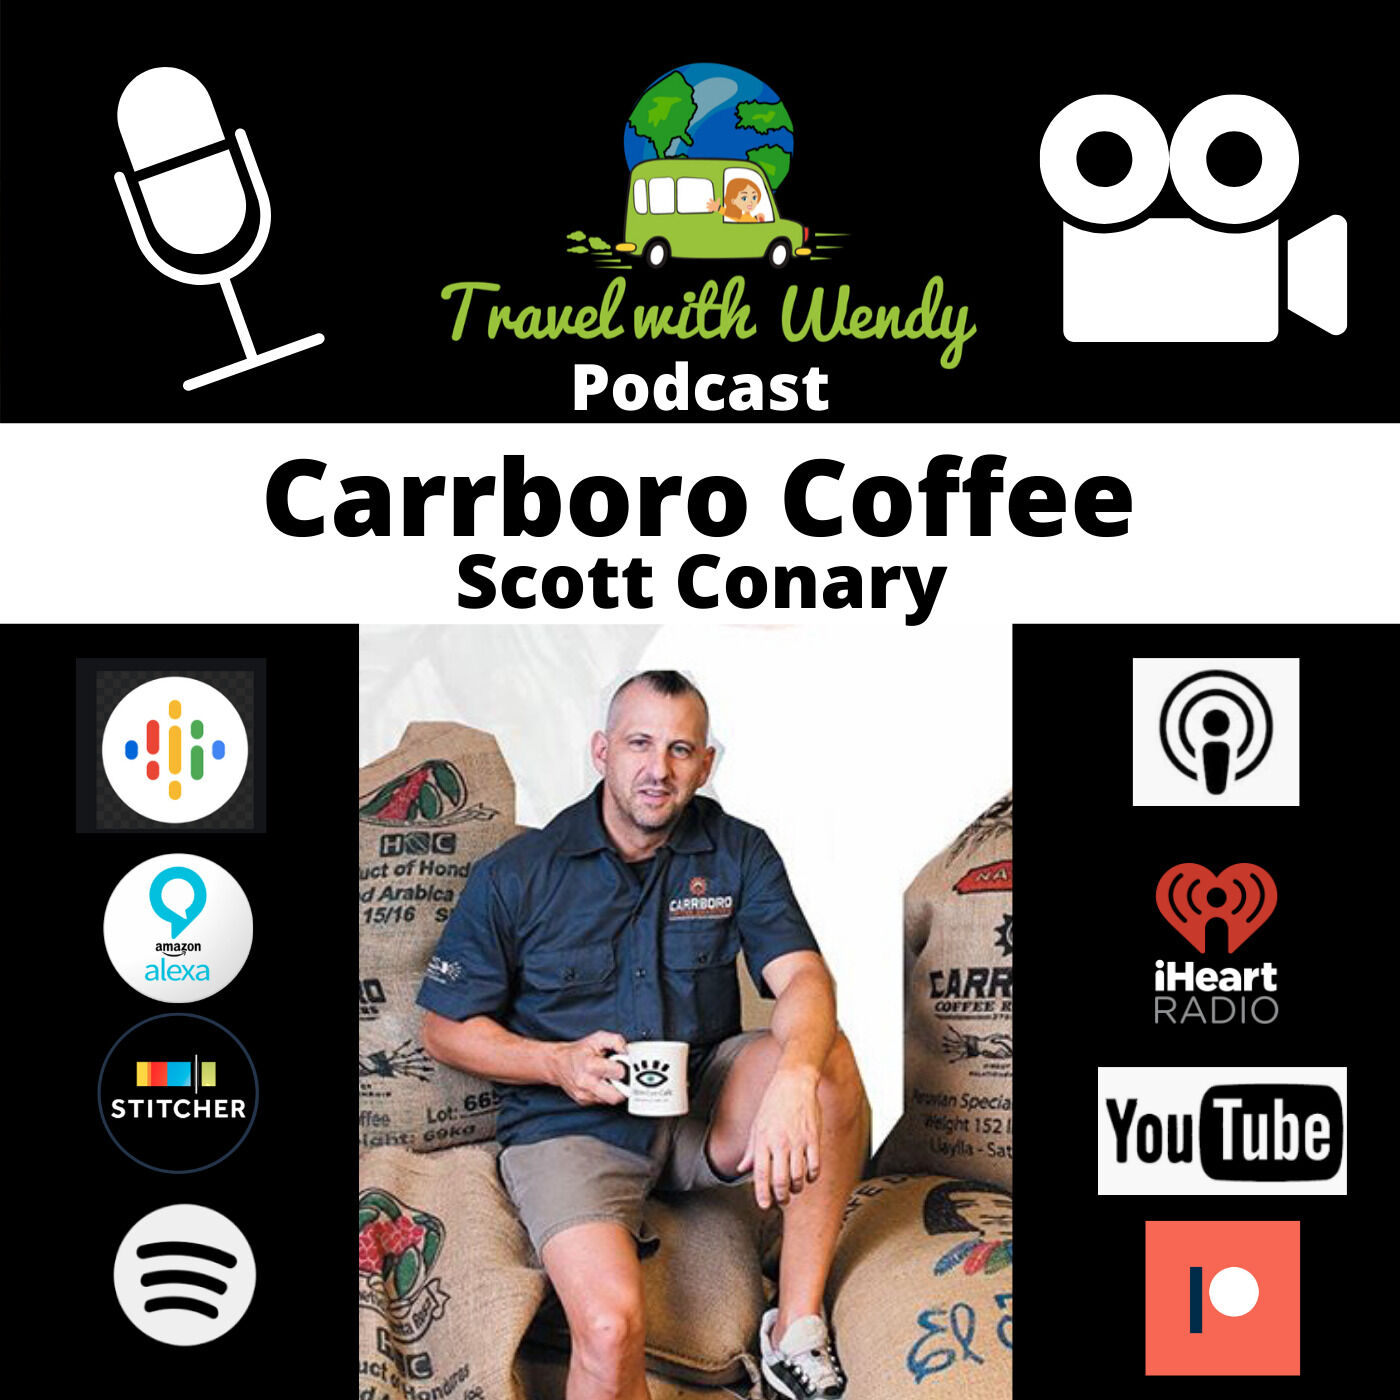 #14 - Carrboro Coffee, Scott Conary ~ for the love of coffee!